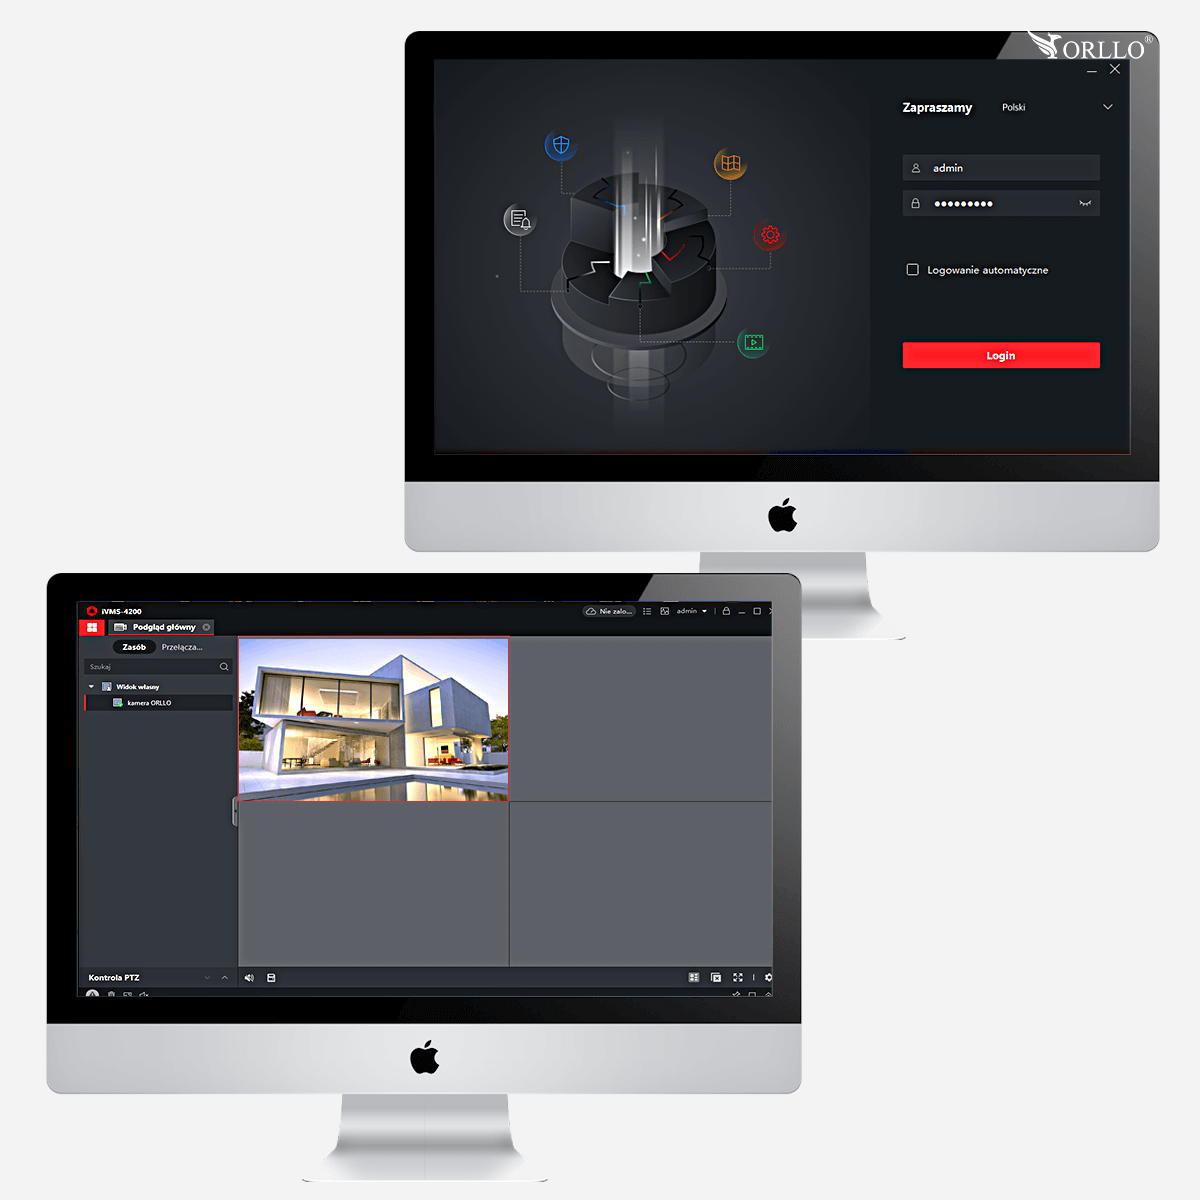 hikvision hiwatch series hok-connect orllo.pl